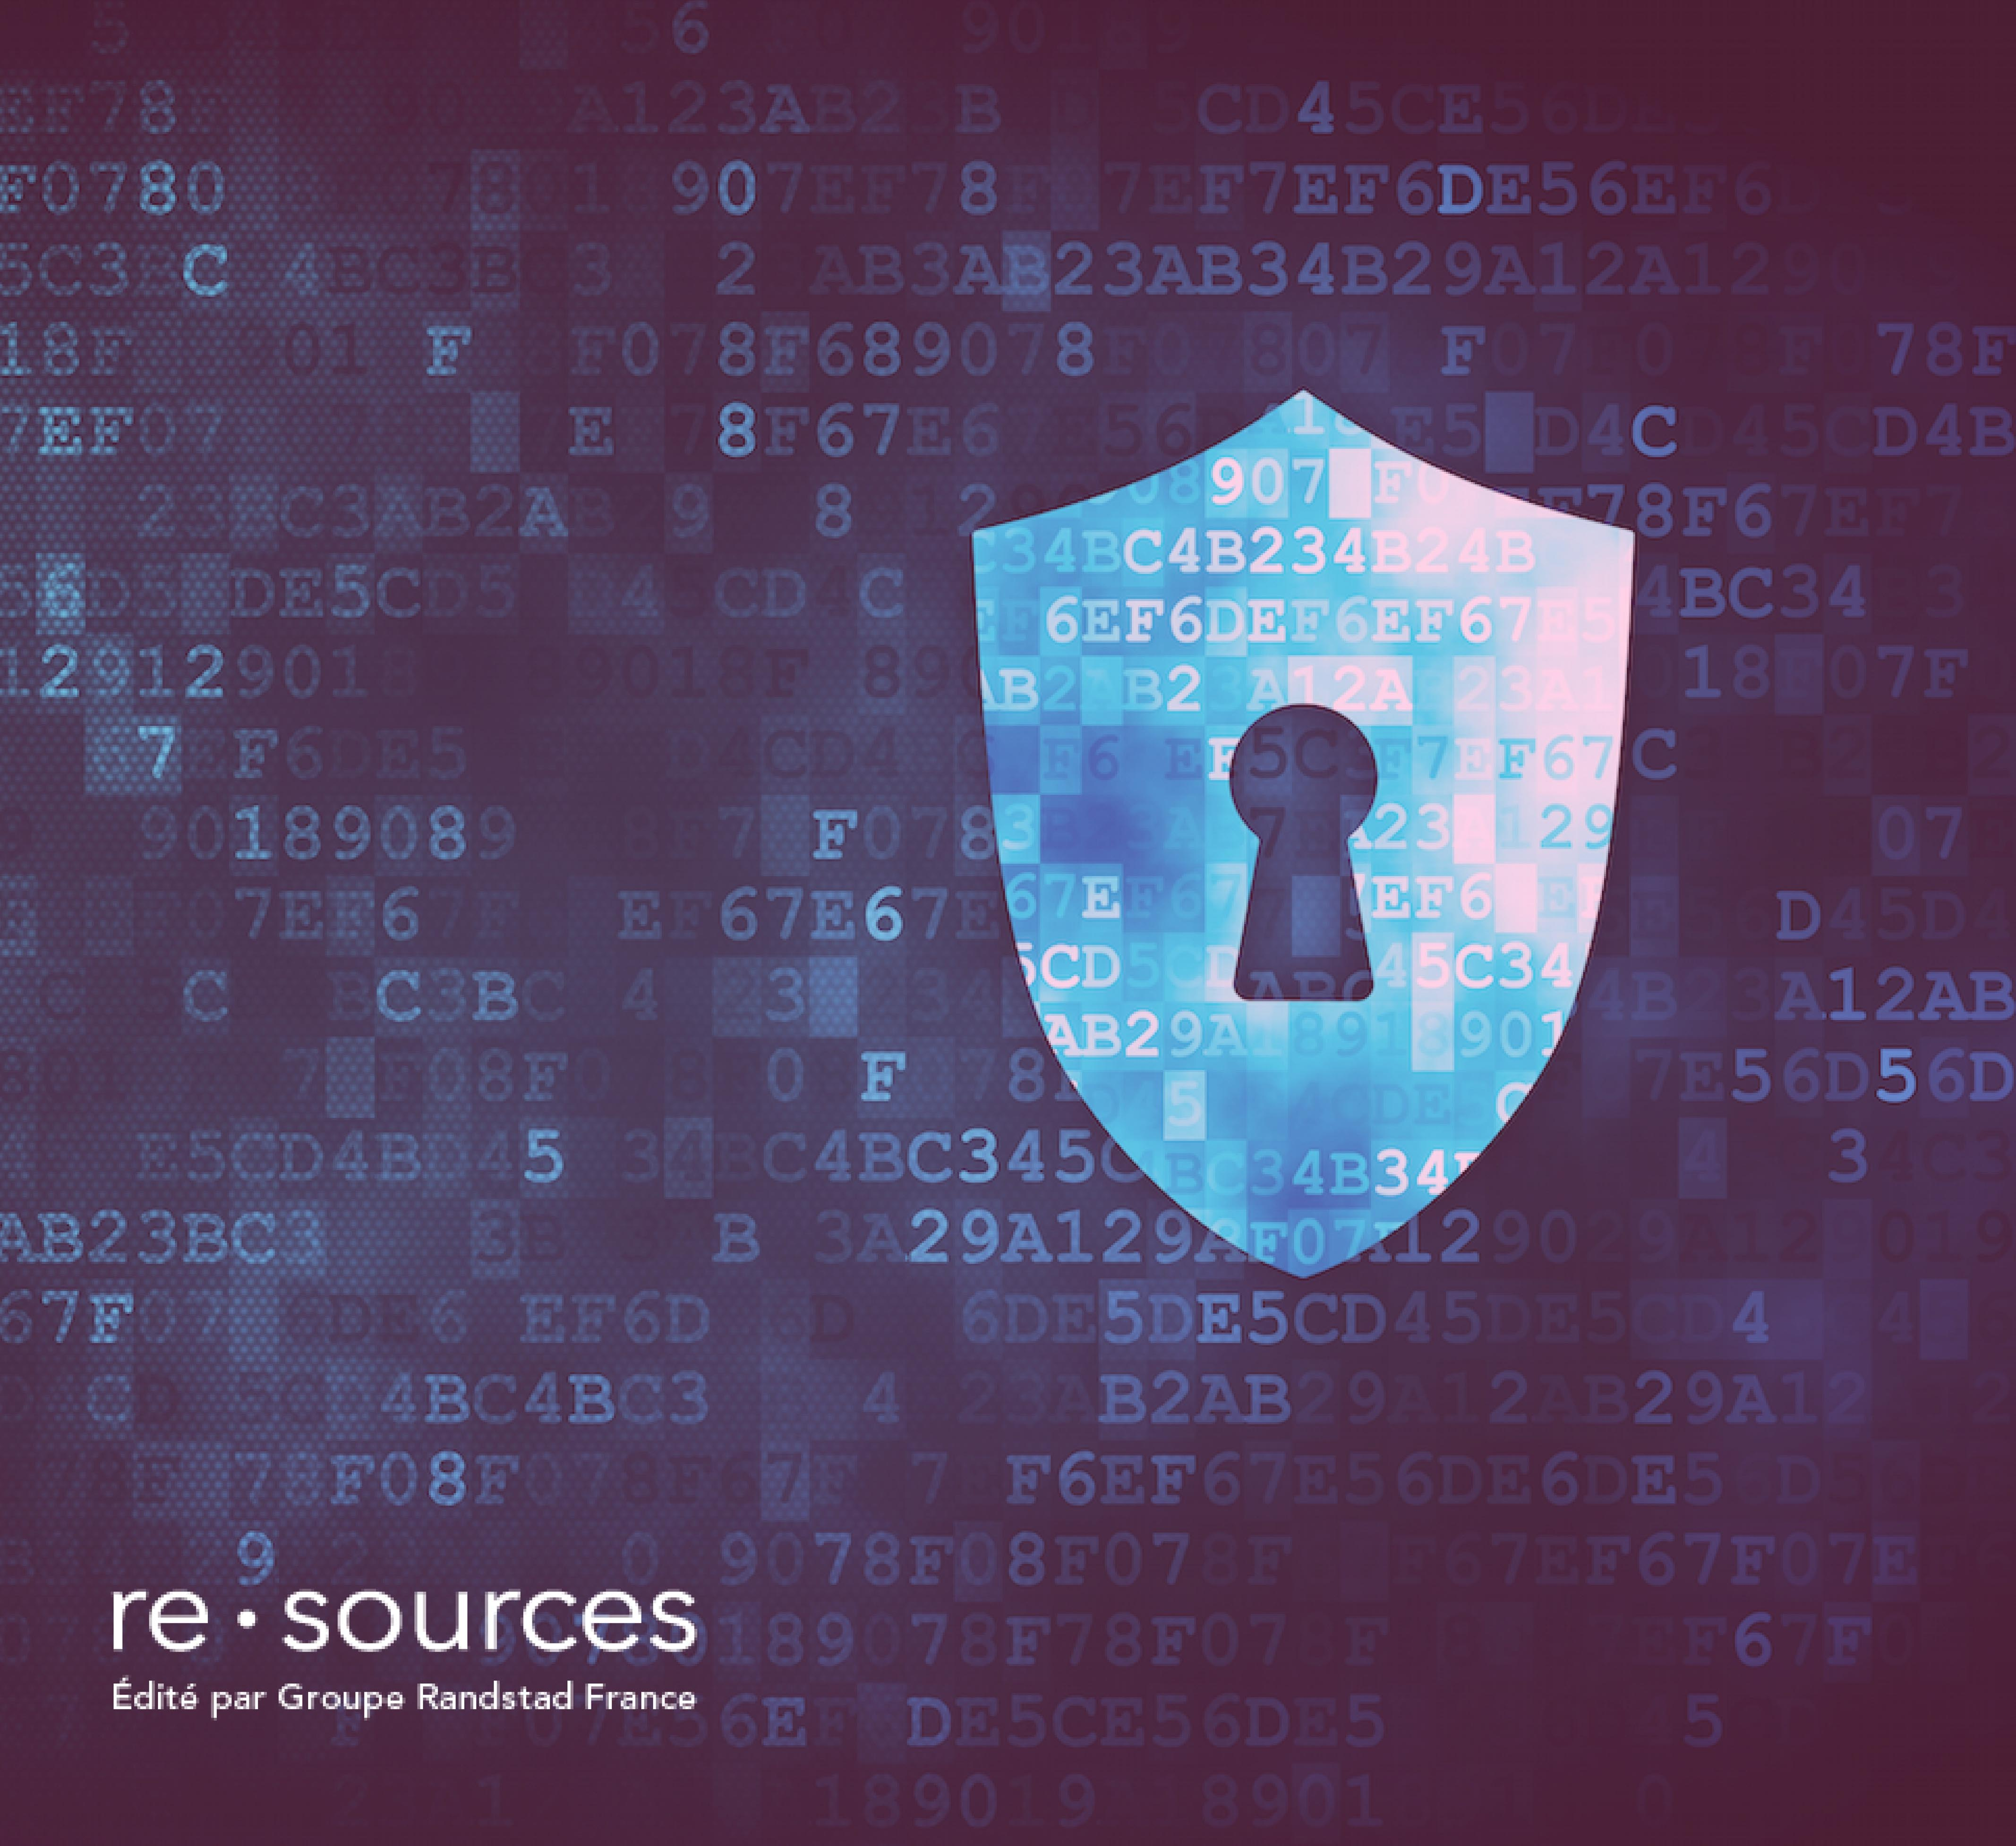 re.sources - cybersecurite_1